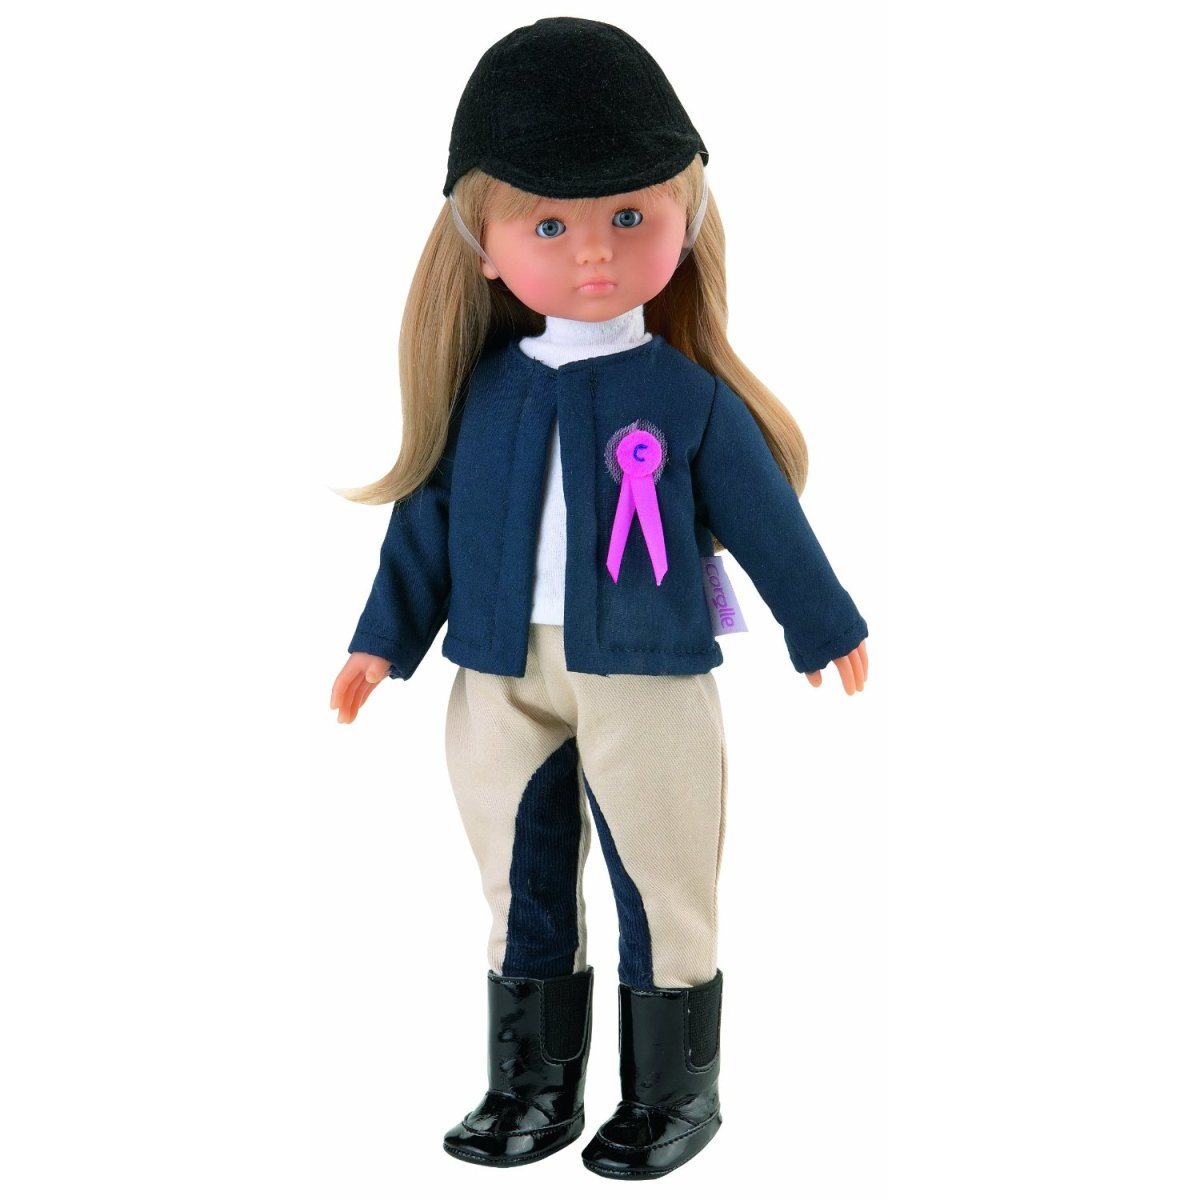 "Corolle Les Cheries 13"" Fashion Doll (Camille Equestrienne)"